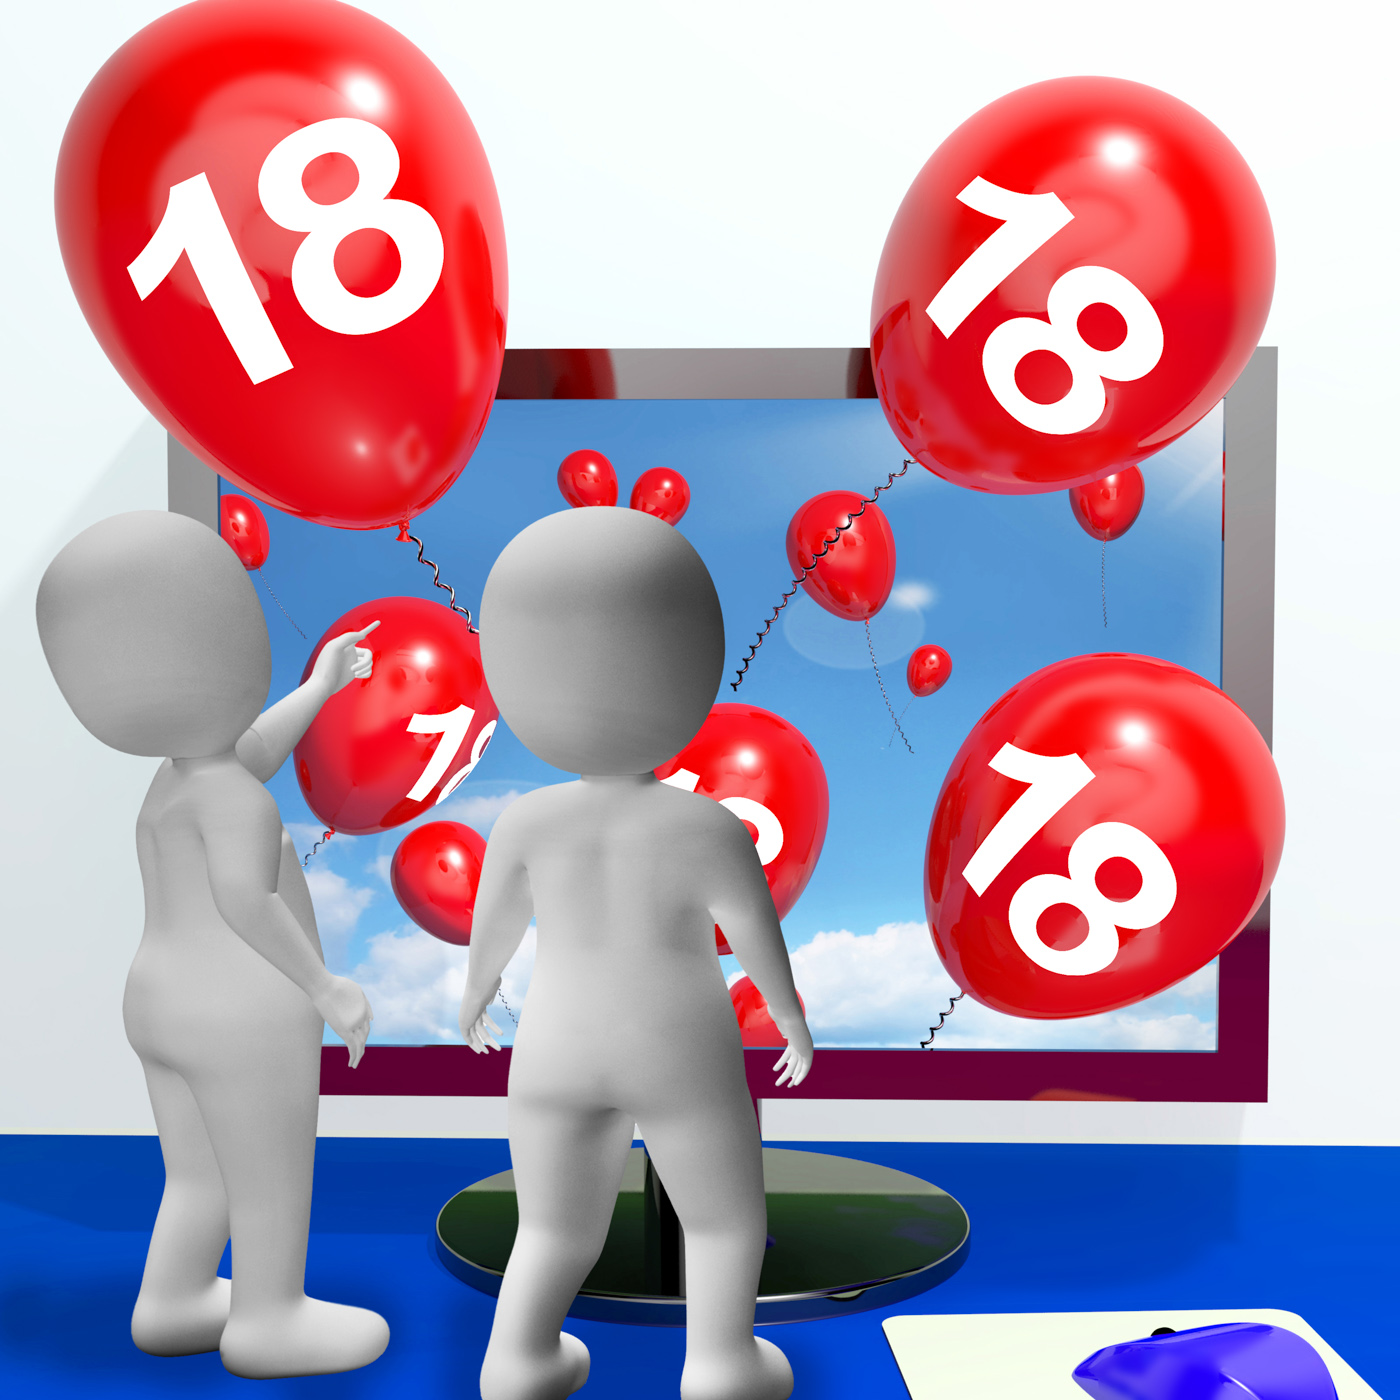 Number 18 balloons from monitor show online invitation or celebration photo